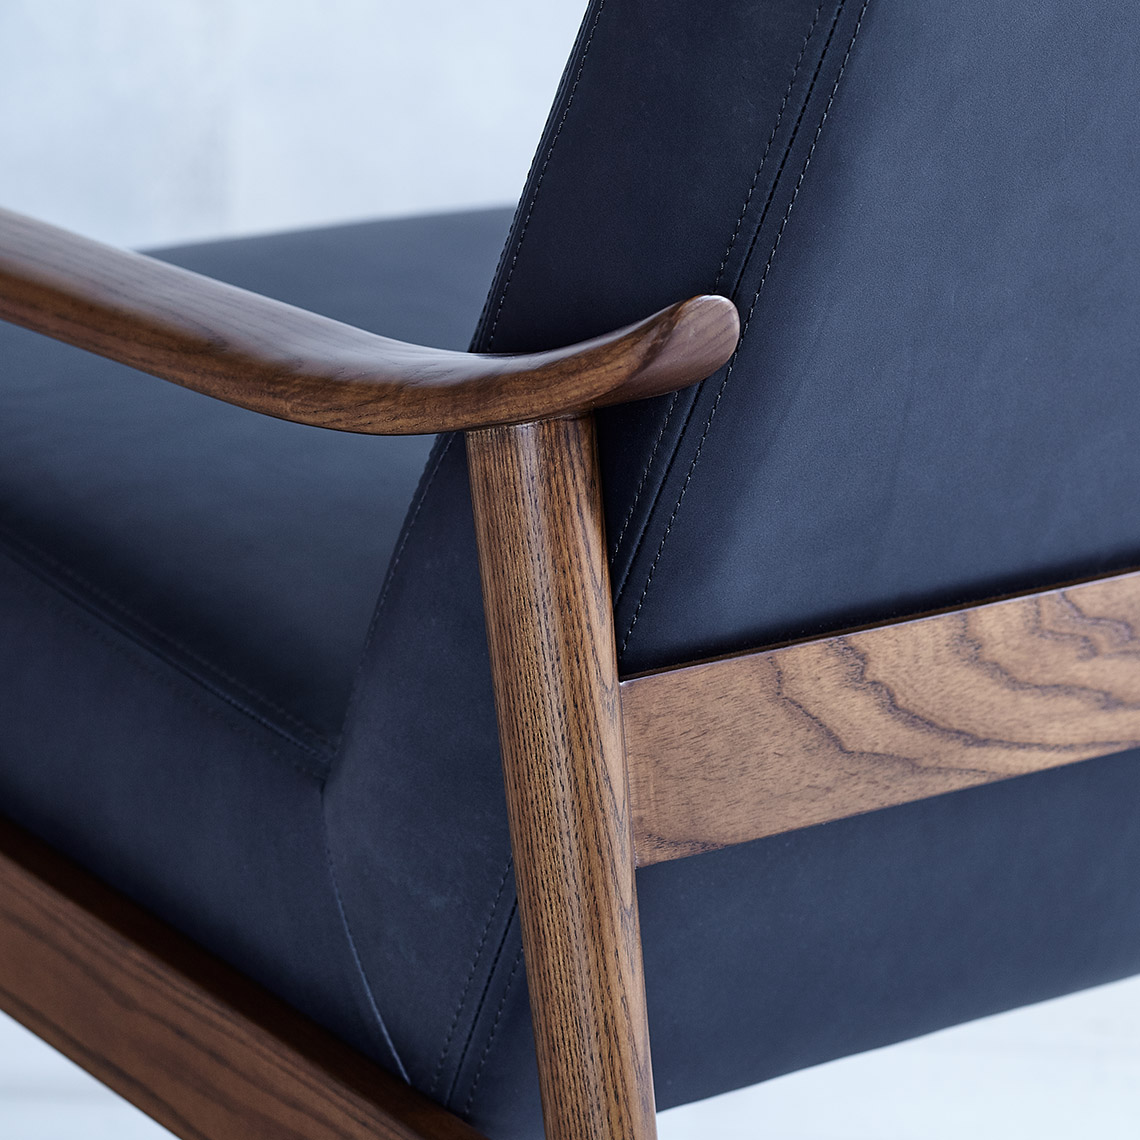 pip-mc-show-wood-leather-chair-agean-blue-leather-detail-sp17-114